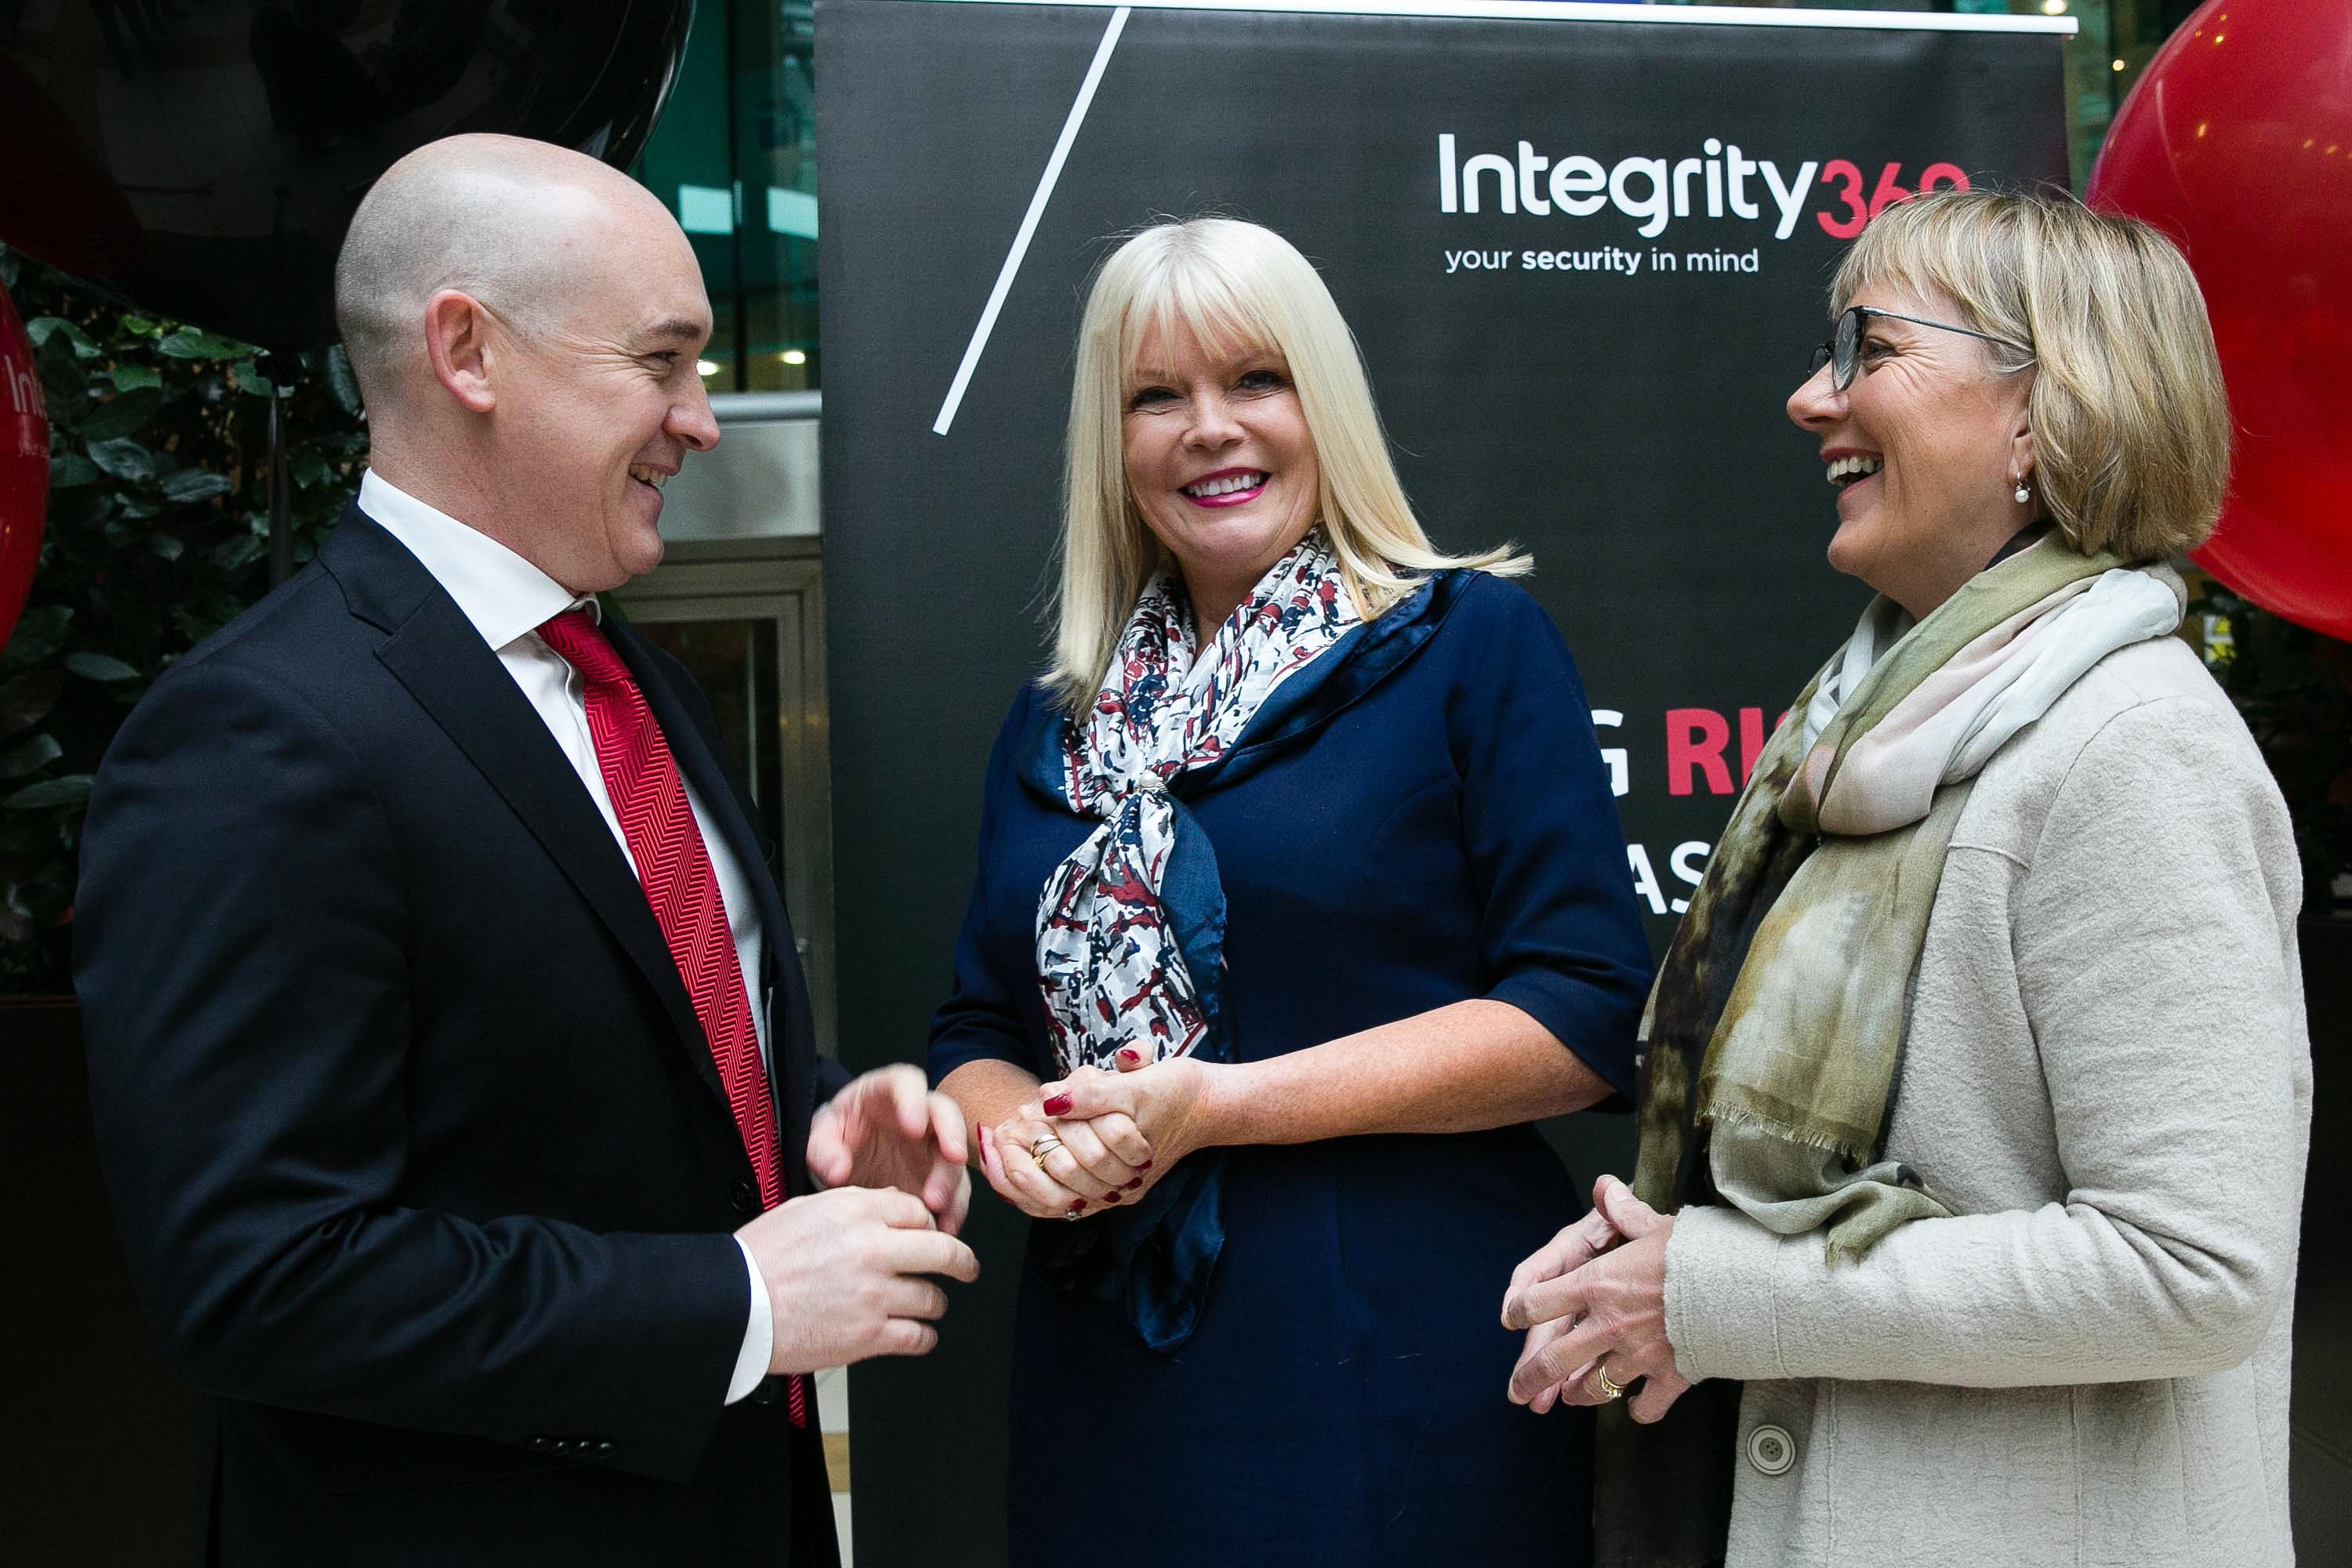 News 1/11/16 NO FEE FOR REPRO Pictured at the Irish Cyber Security firm Integrity360's annoucement of the creation of 150 new jobs at its HQ in Sandyford, Dublin was Eoin Goulding, CEO, Integrity360, Minister for Jobs, Enterprise and Innovation, Mary Mitchell O'Connor TD and Julie Sinnamon, CEO, Enterprise Ireland. Pic Orla Murray Recruitment for 50 new positions, with the support of Enterprise Ireland will be completed by the end of this year. In addition the company plans to hire a further 100 staff by the end of 2018 which will see the firm double in size. Development of Integrity360's managed security services is expected to propel growth over the next two years.